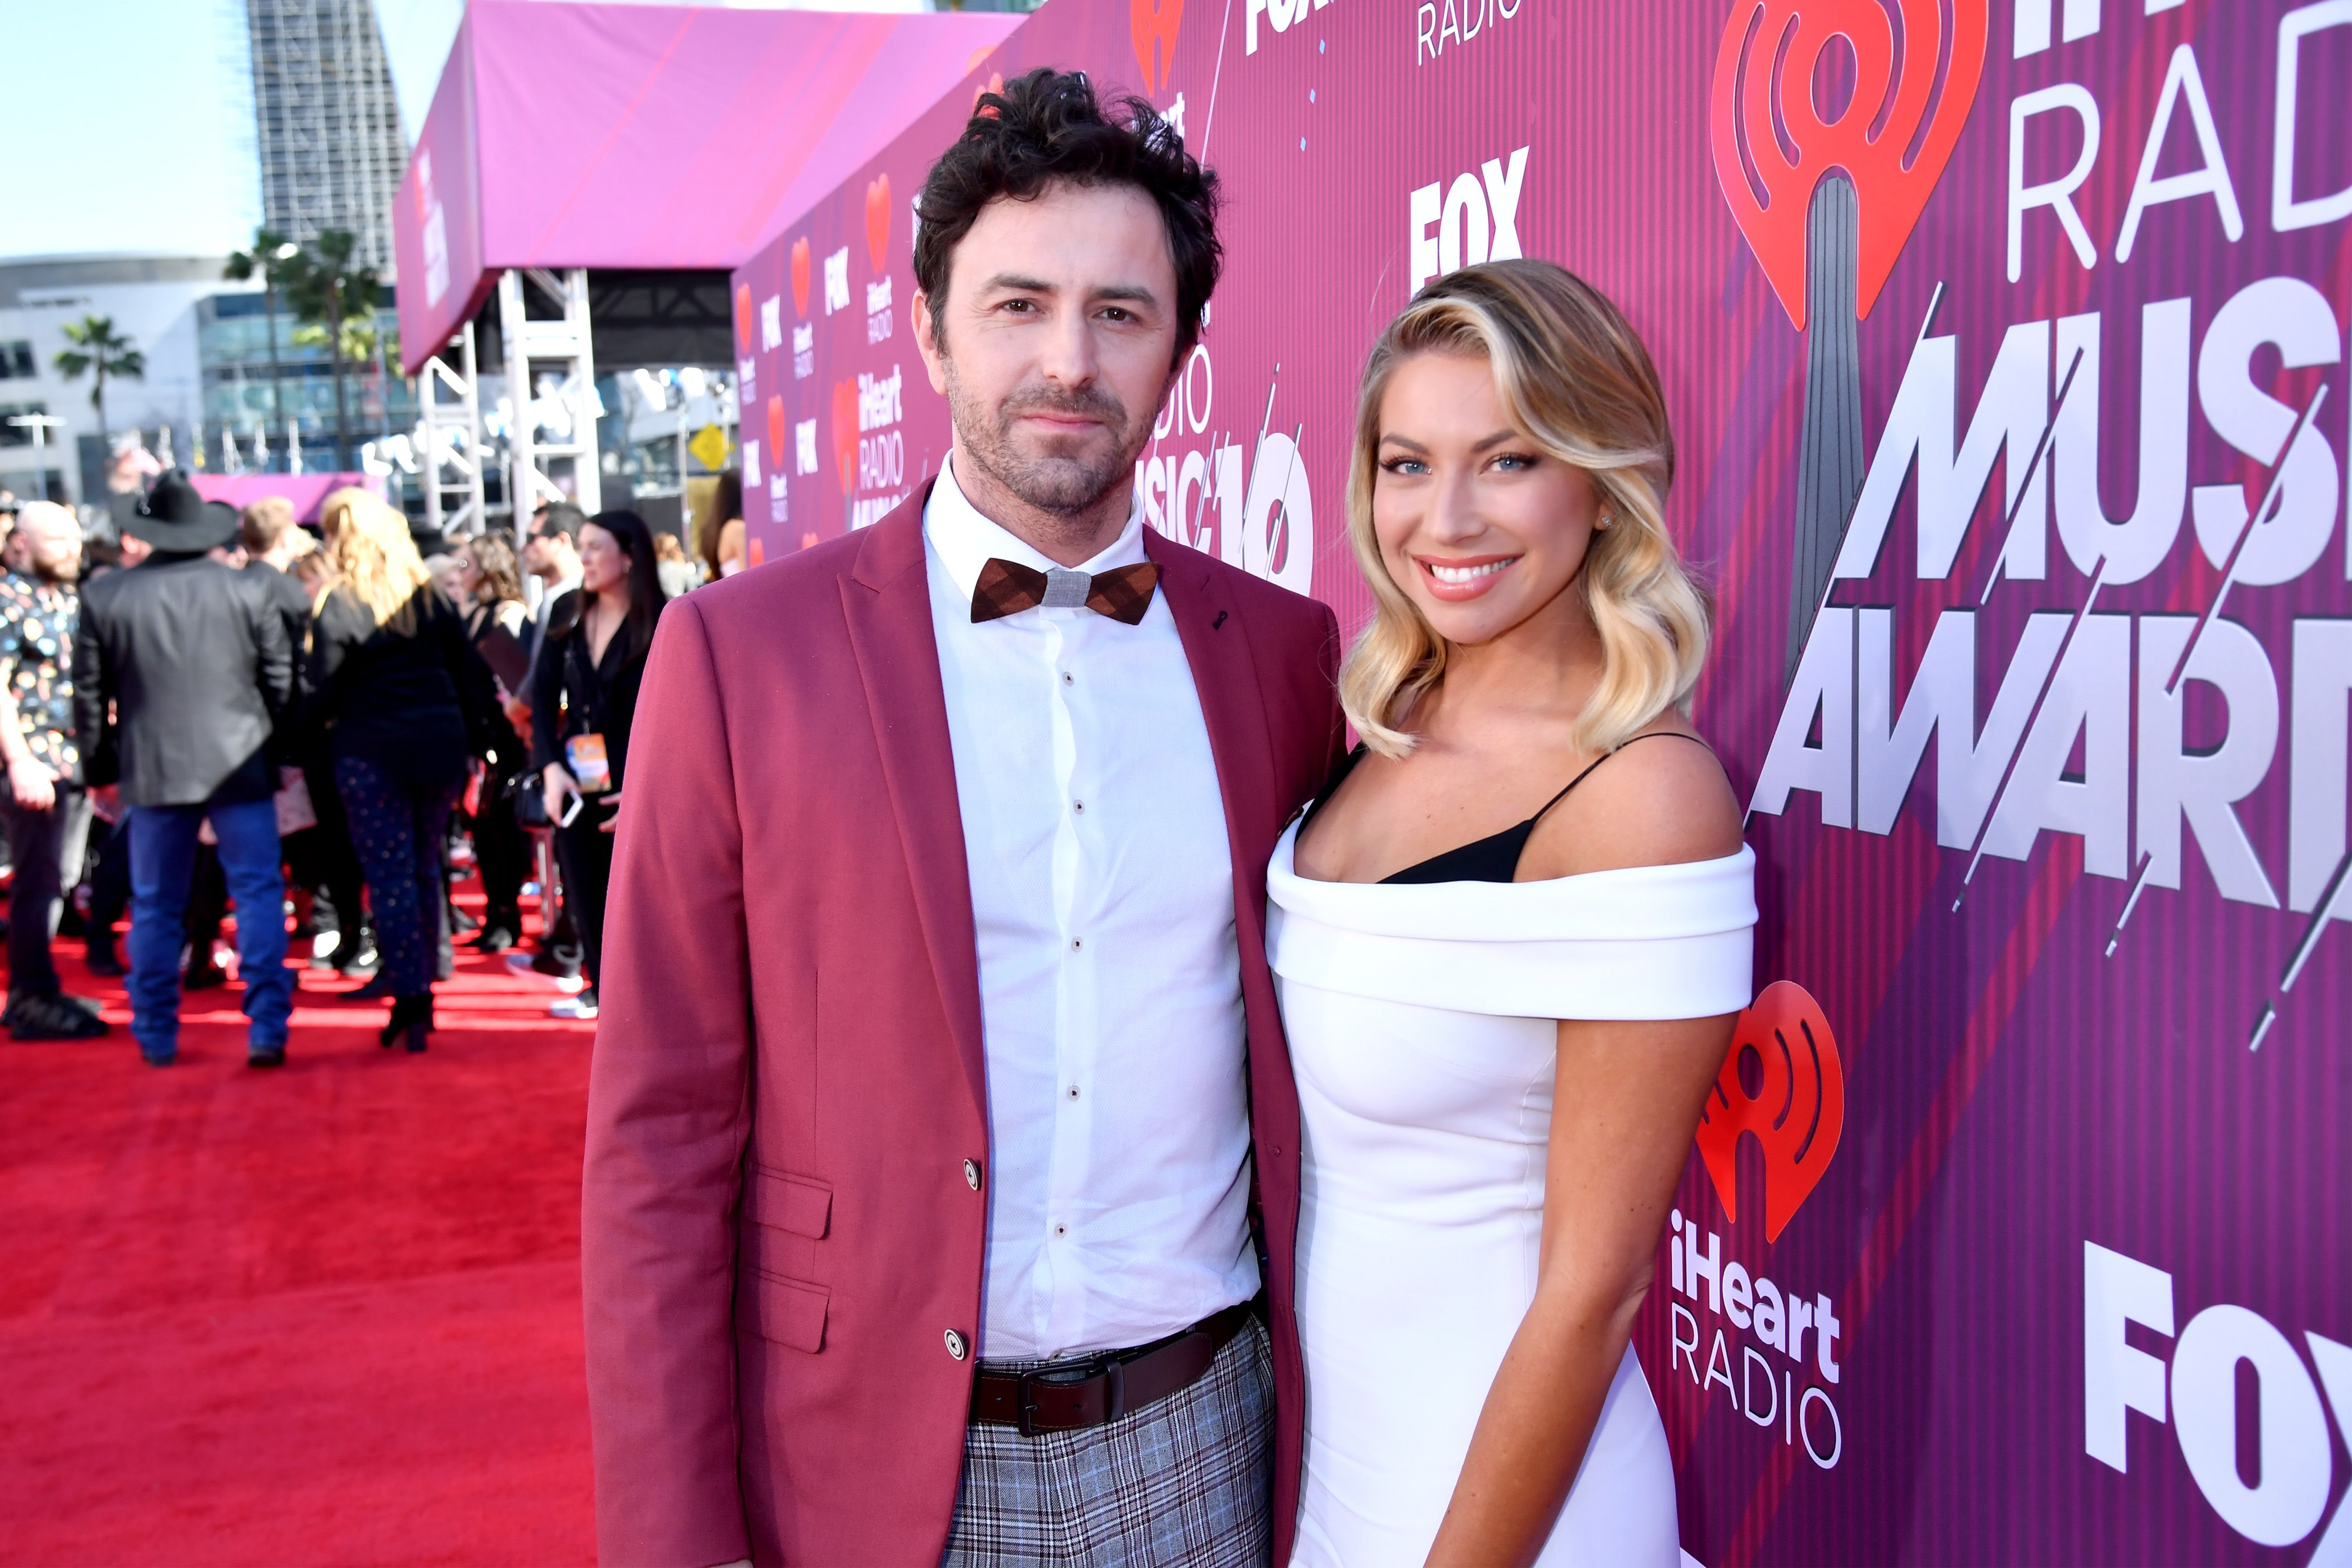 Beau Clark and Stassi Schroeder at iHeartRadio Music Awards